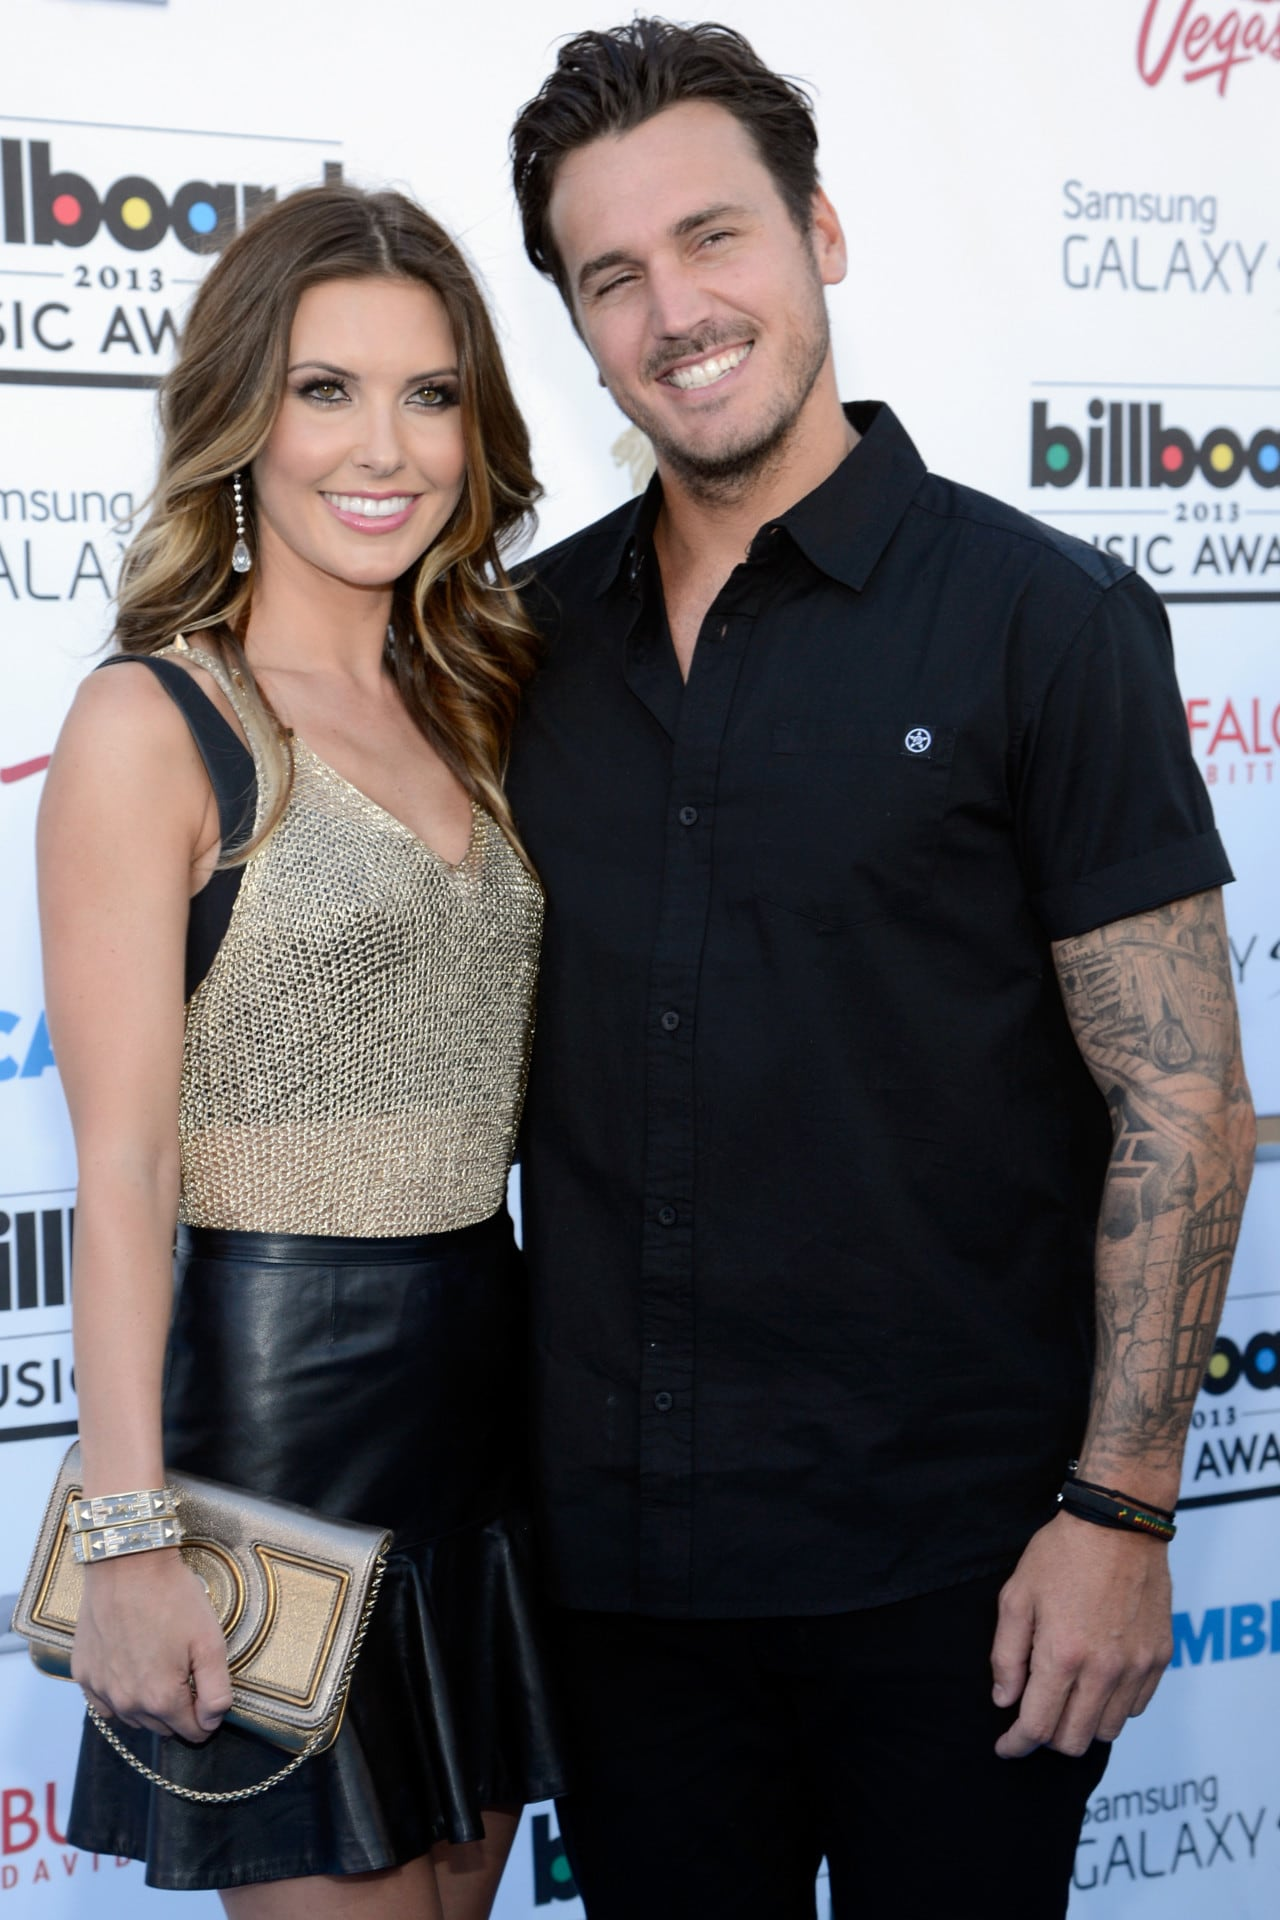 Who is audrina patridge dating right now